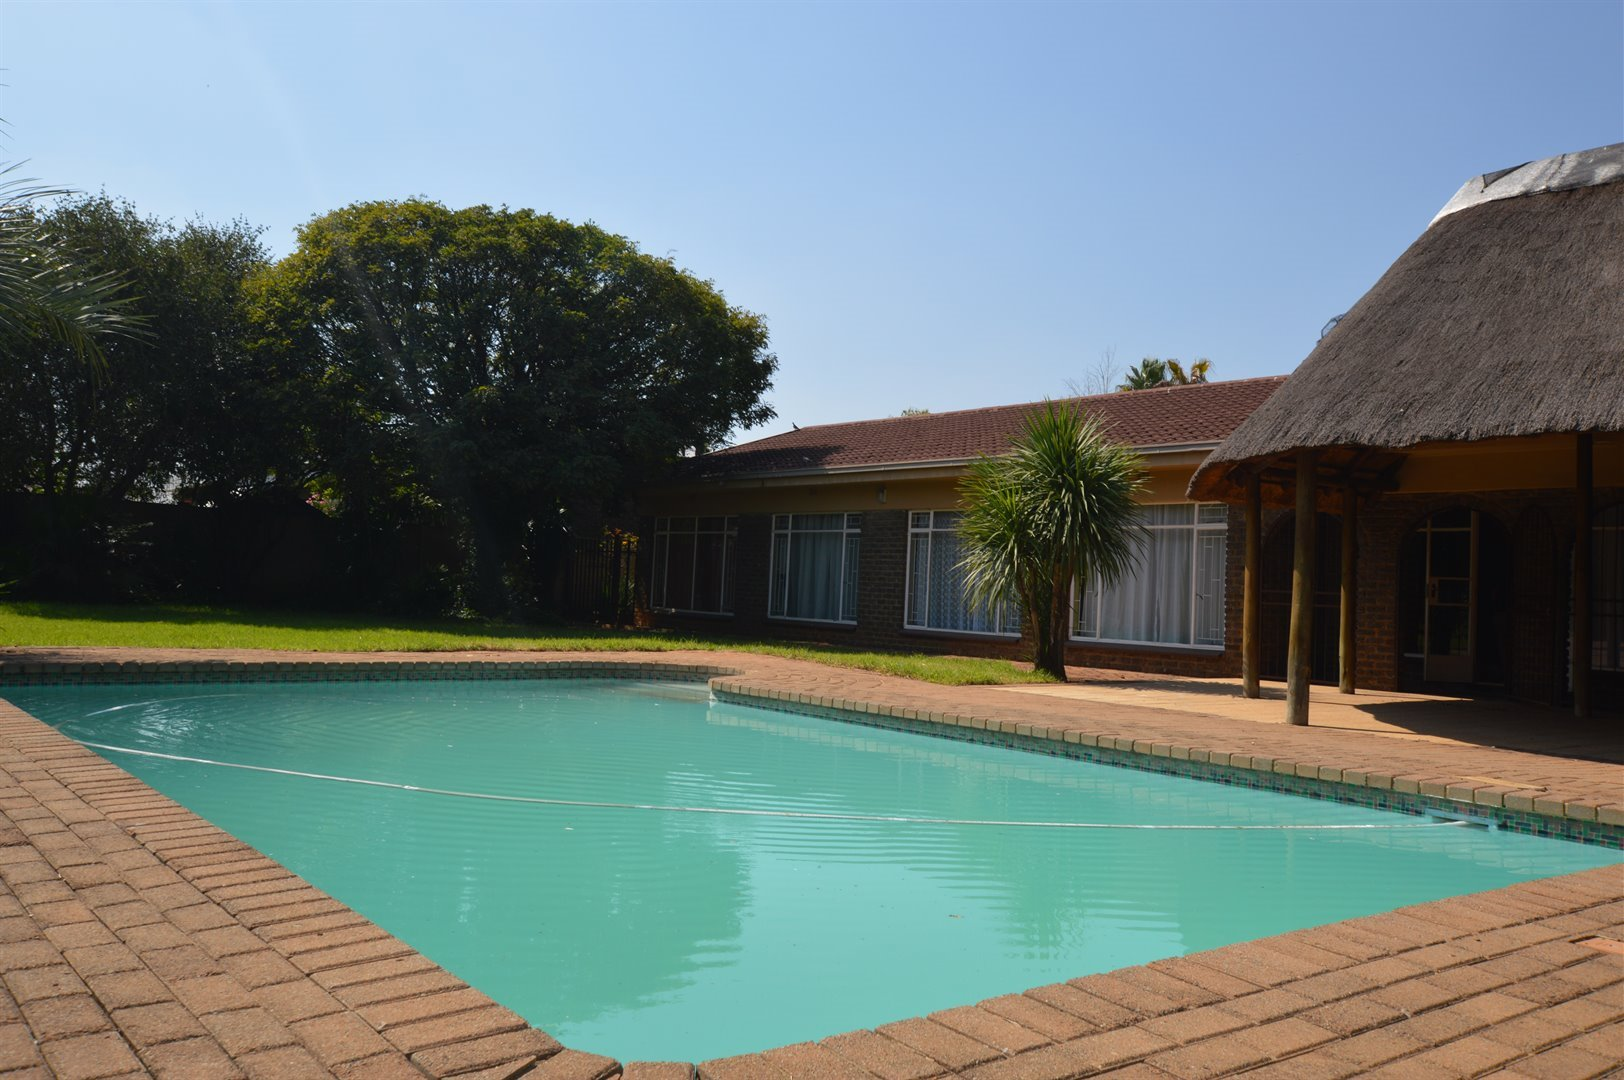 Vanderbijlpark Se 2 for sale property. Ref No: 13623209. Picture no 29